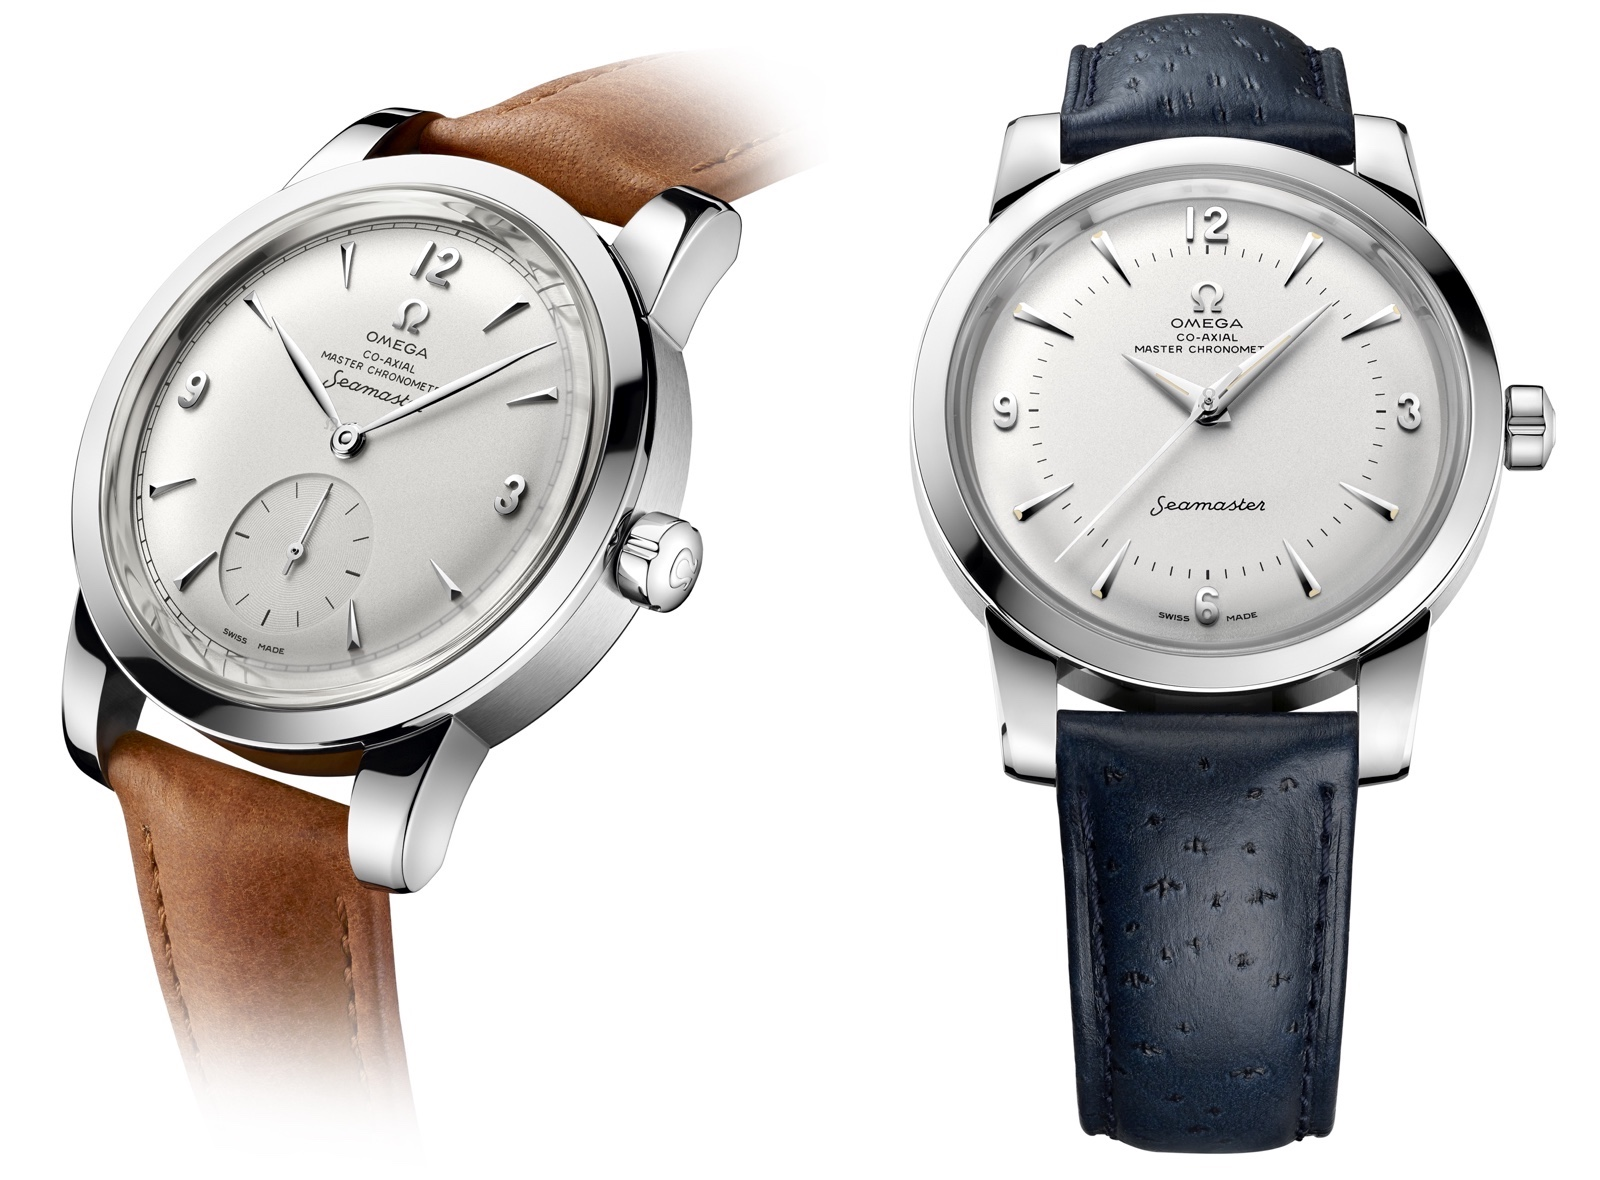 Omega-Seamaster-1948-Limited-Editions